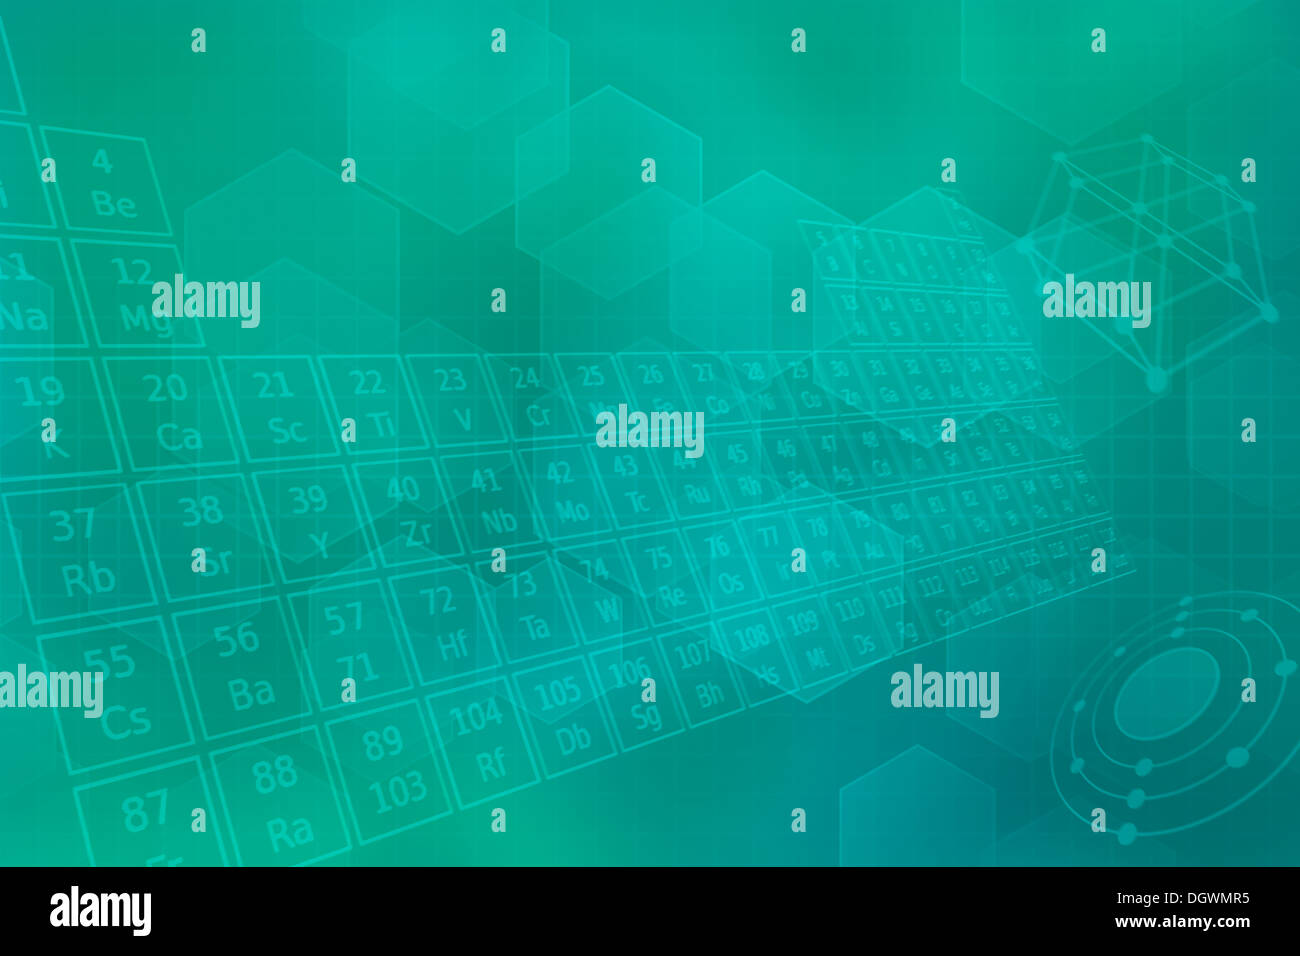 Turquoise futuristic background with the periodic table of elements turquoise futuristic background with the periodic table of elements urtaz Images